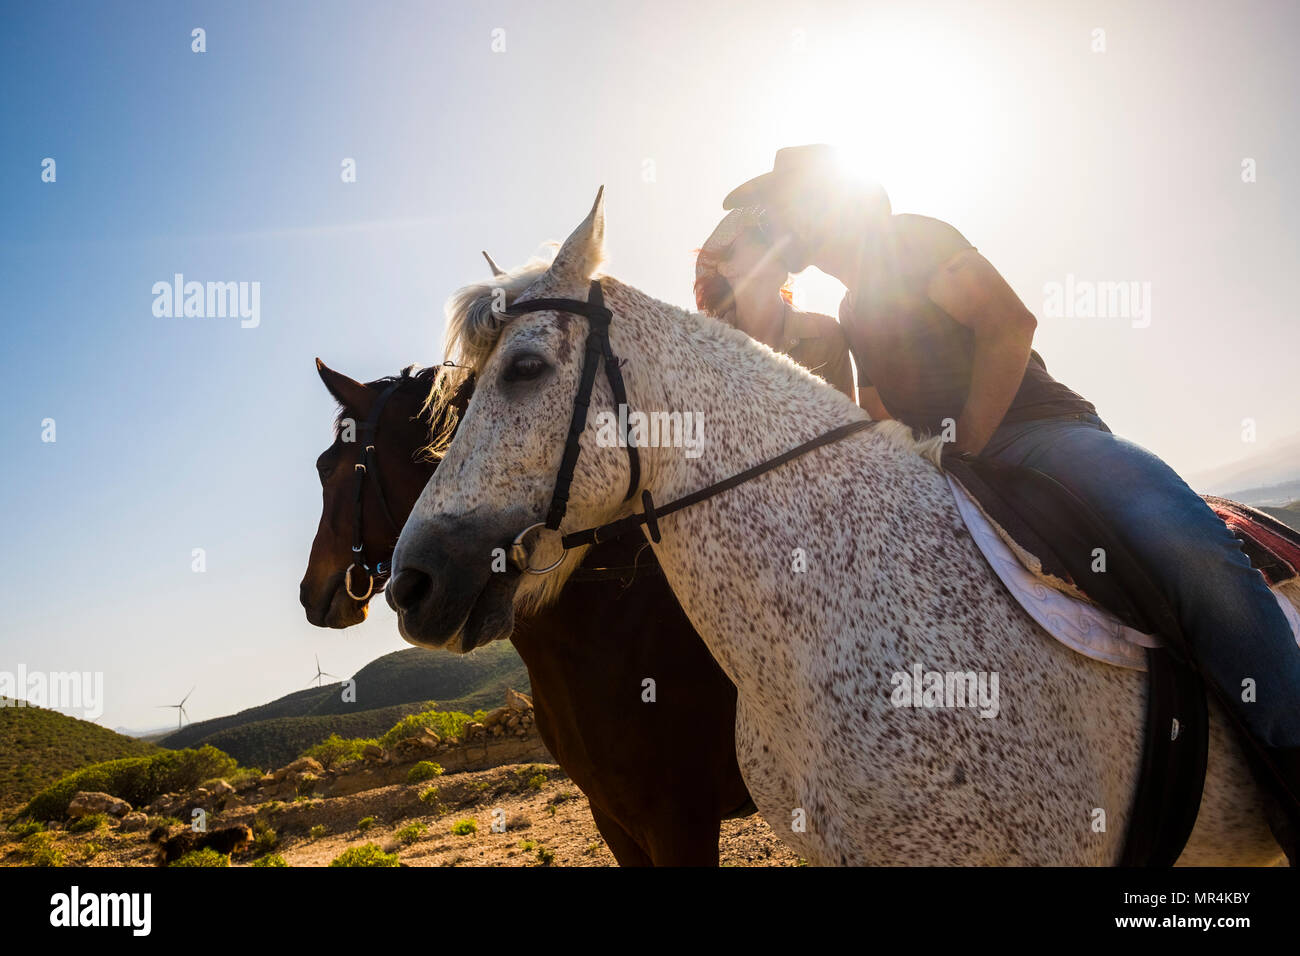 love scene between young beautiful coule riding two nice horses in the nature. windmill for green energy and better future on the background. alternat - Stock Image